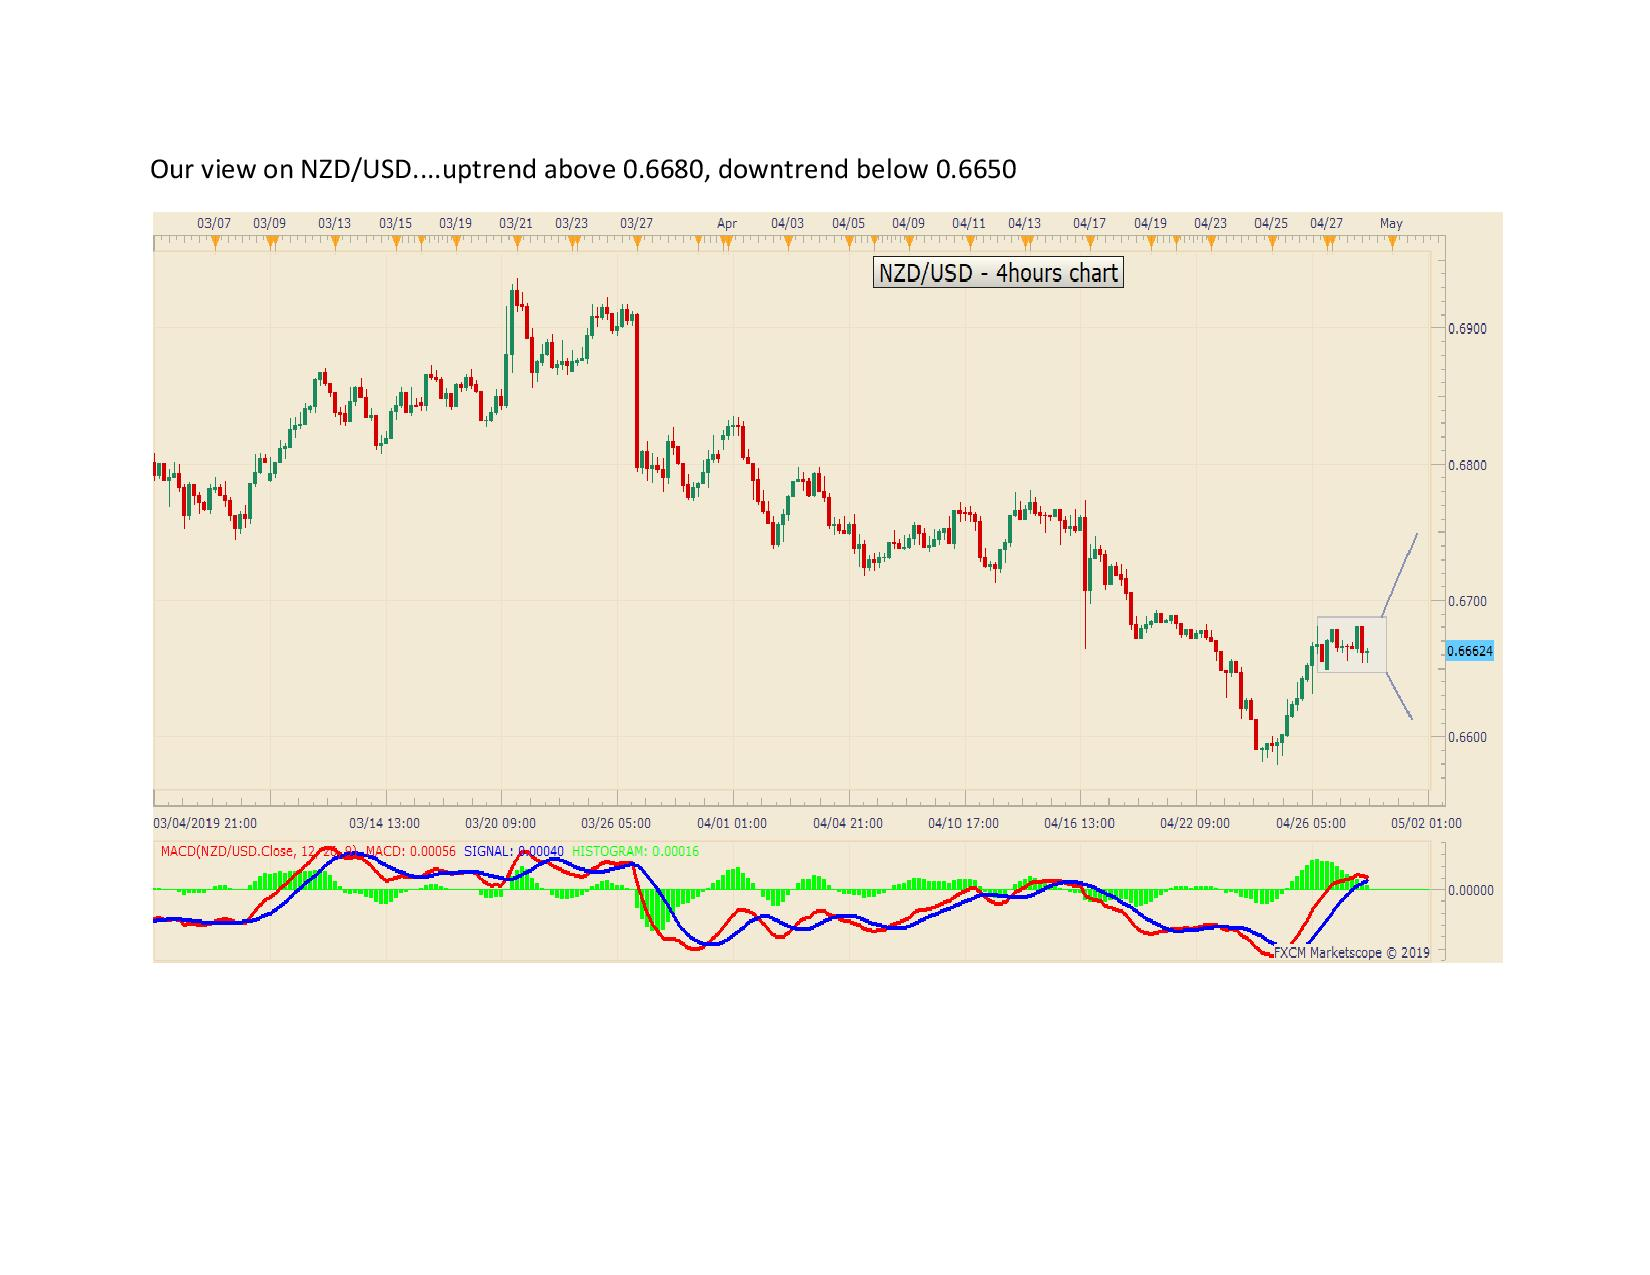 Our view on NZDUSD page 001